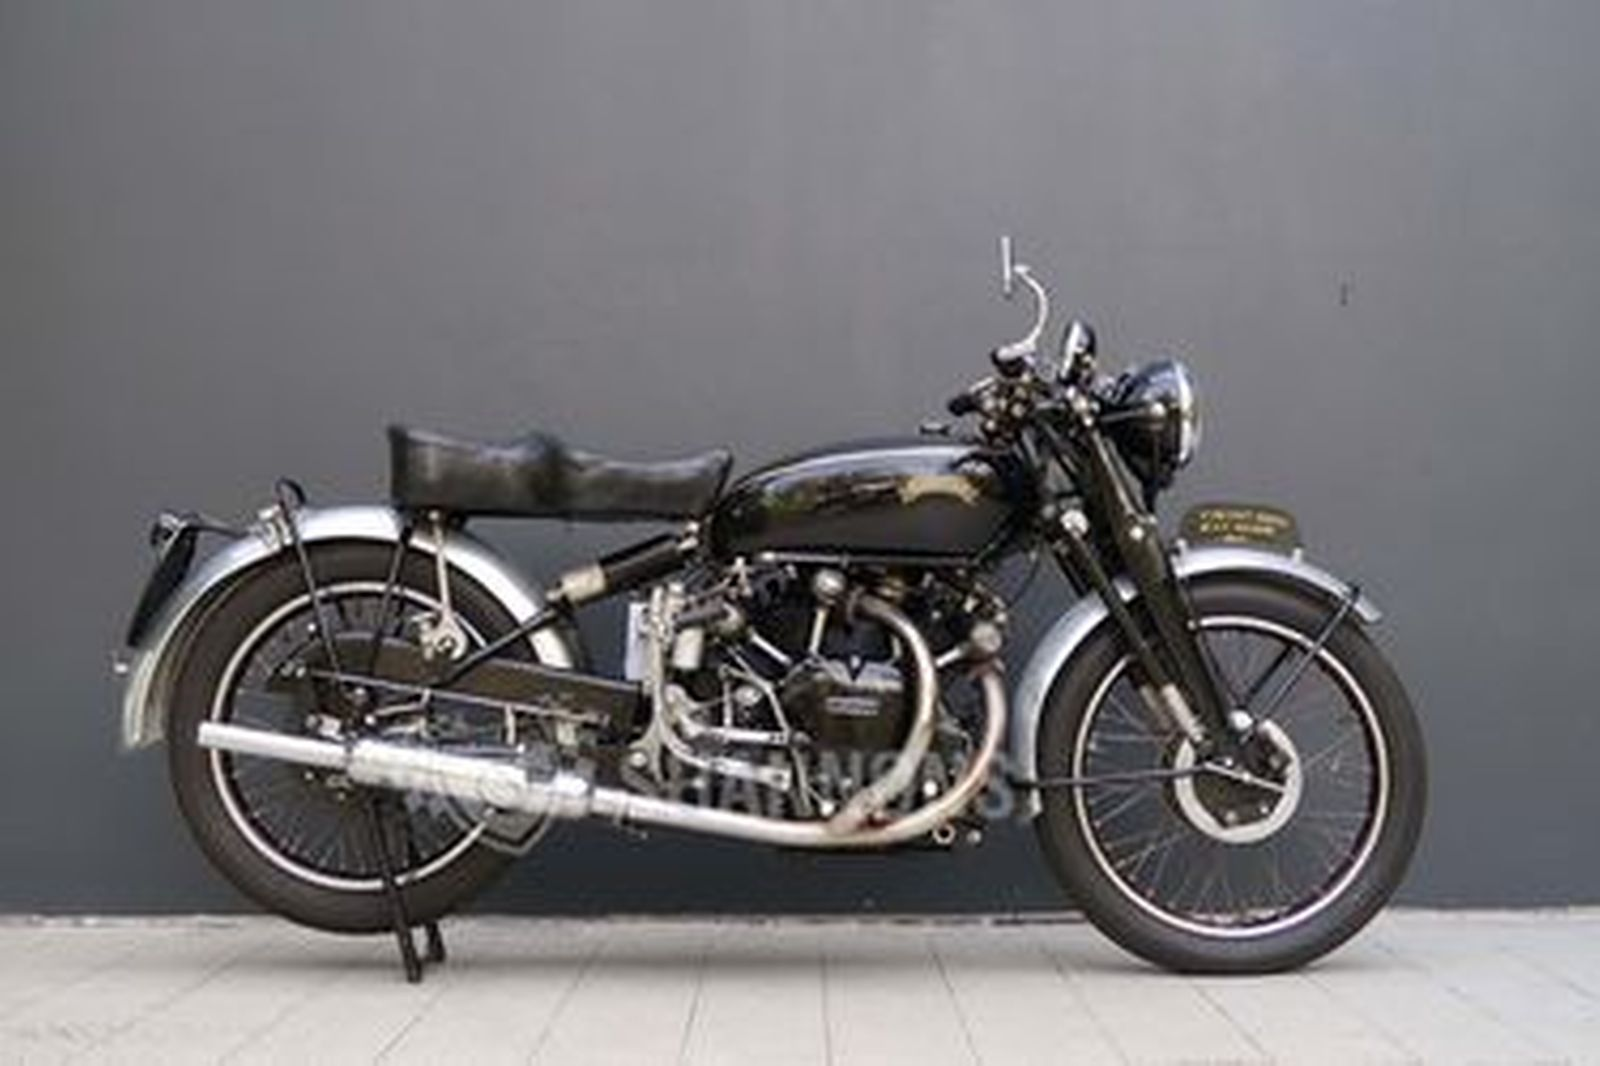 Vincent Series C Black Shadow 1000cc Motorcycle